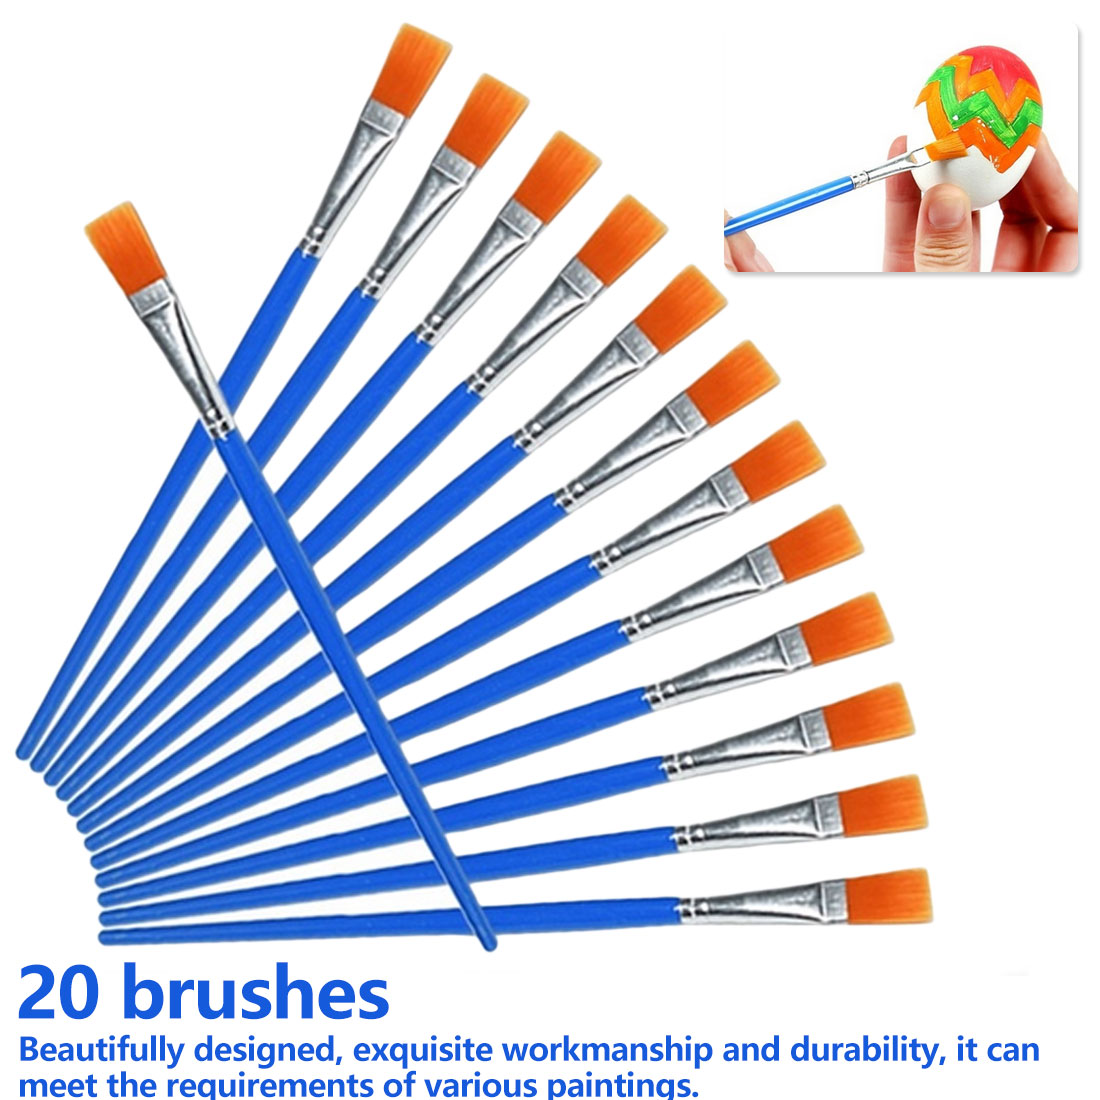 20Pcs/ Set Watercolor Painting Brush Gouache Brushes Hook Line Pen Nylon Hair Paint Brush Drawing Brushes For DIY Art Supplies